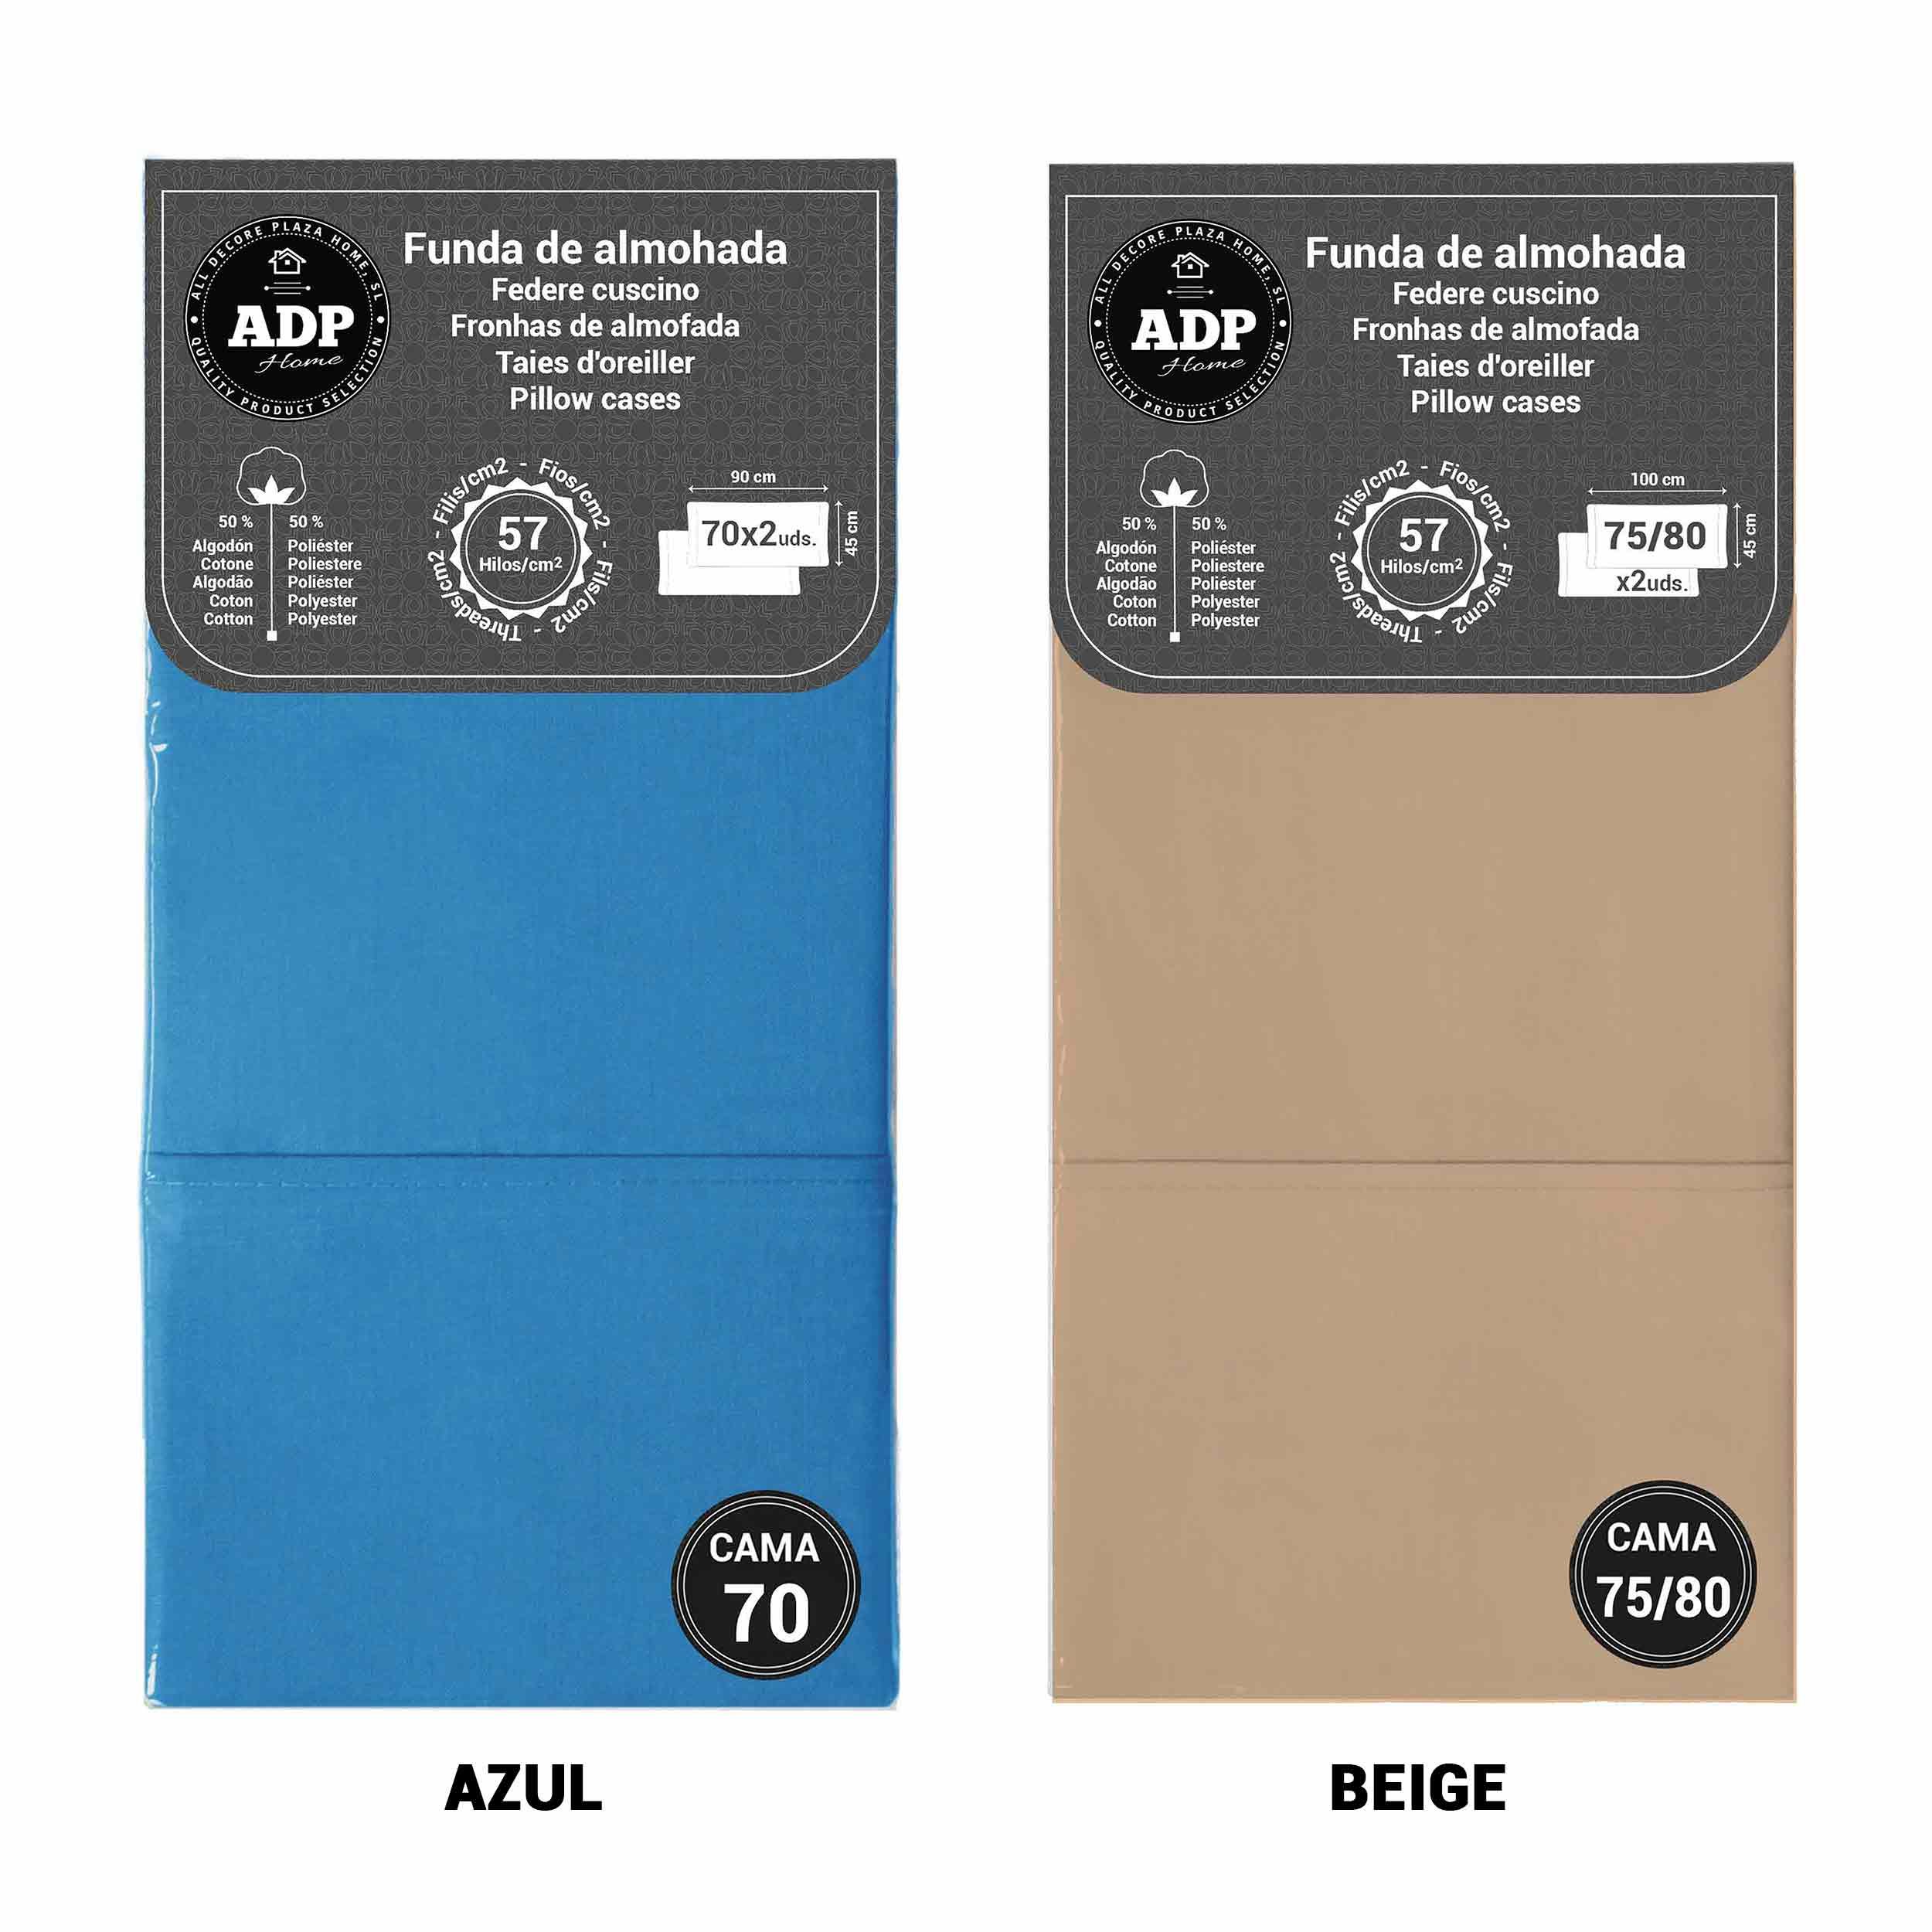 ADP Home - Pillowcase Dyed, 144 Threads (Pack 2 Und. 70 Cm, 75/80 Cm, 90 Cm; 1 Und. 105 Cm, 135 Cm, 150 Cm)